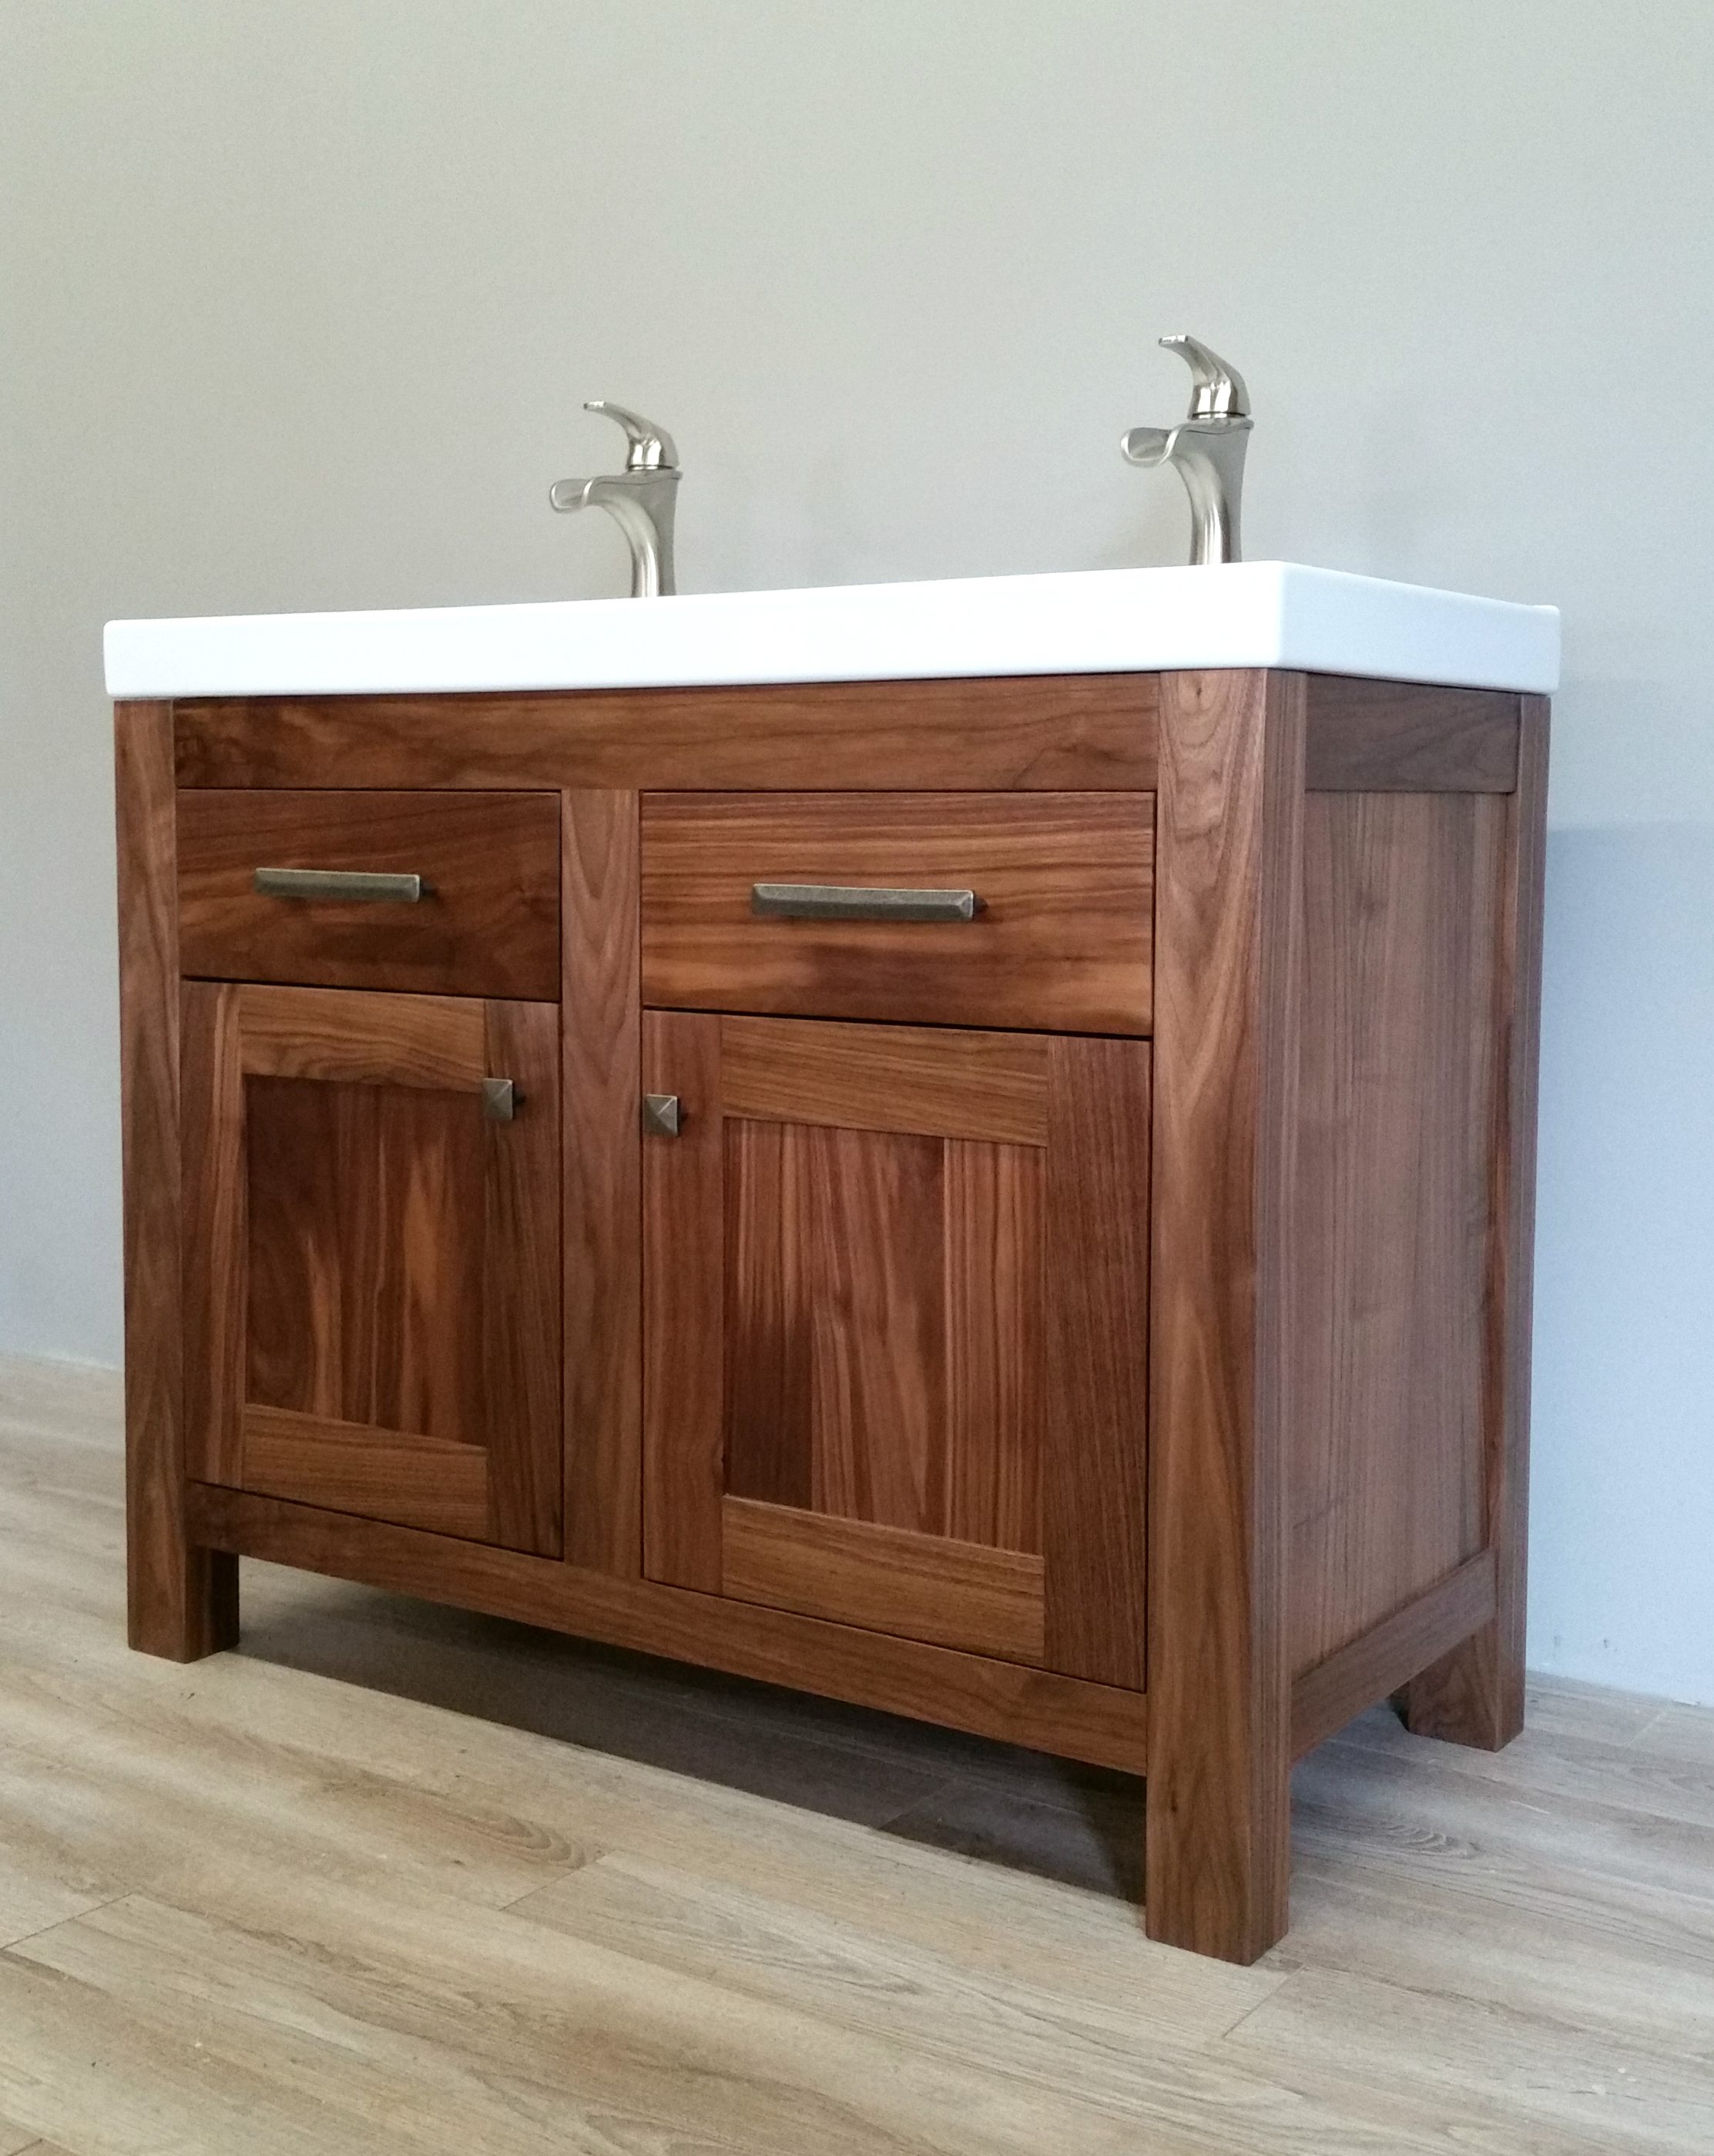 Custom Built Double Vanity